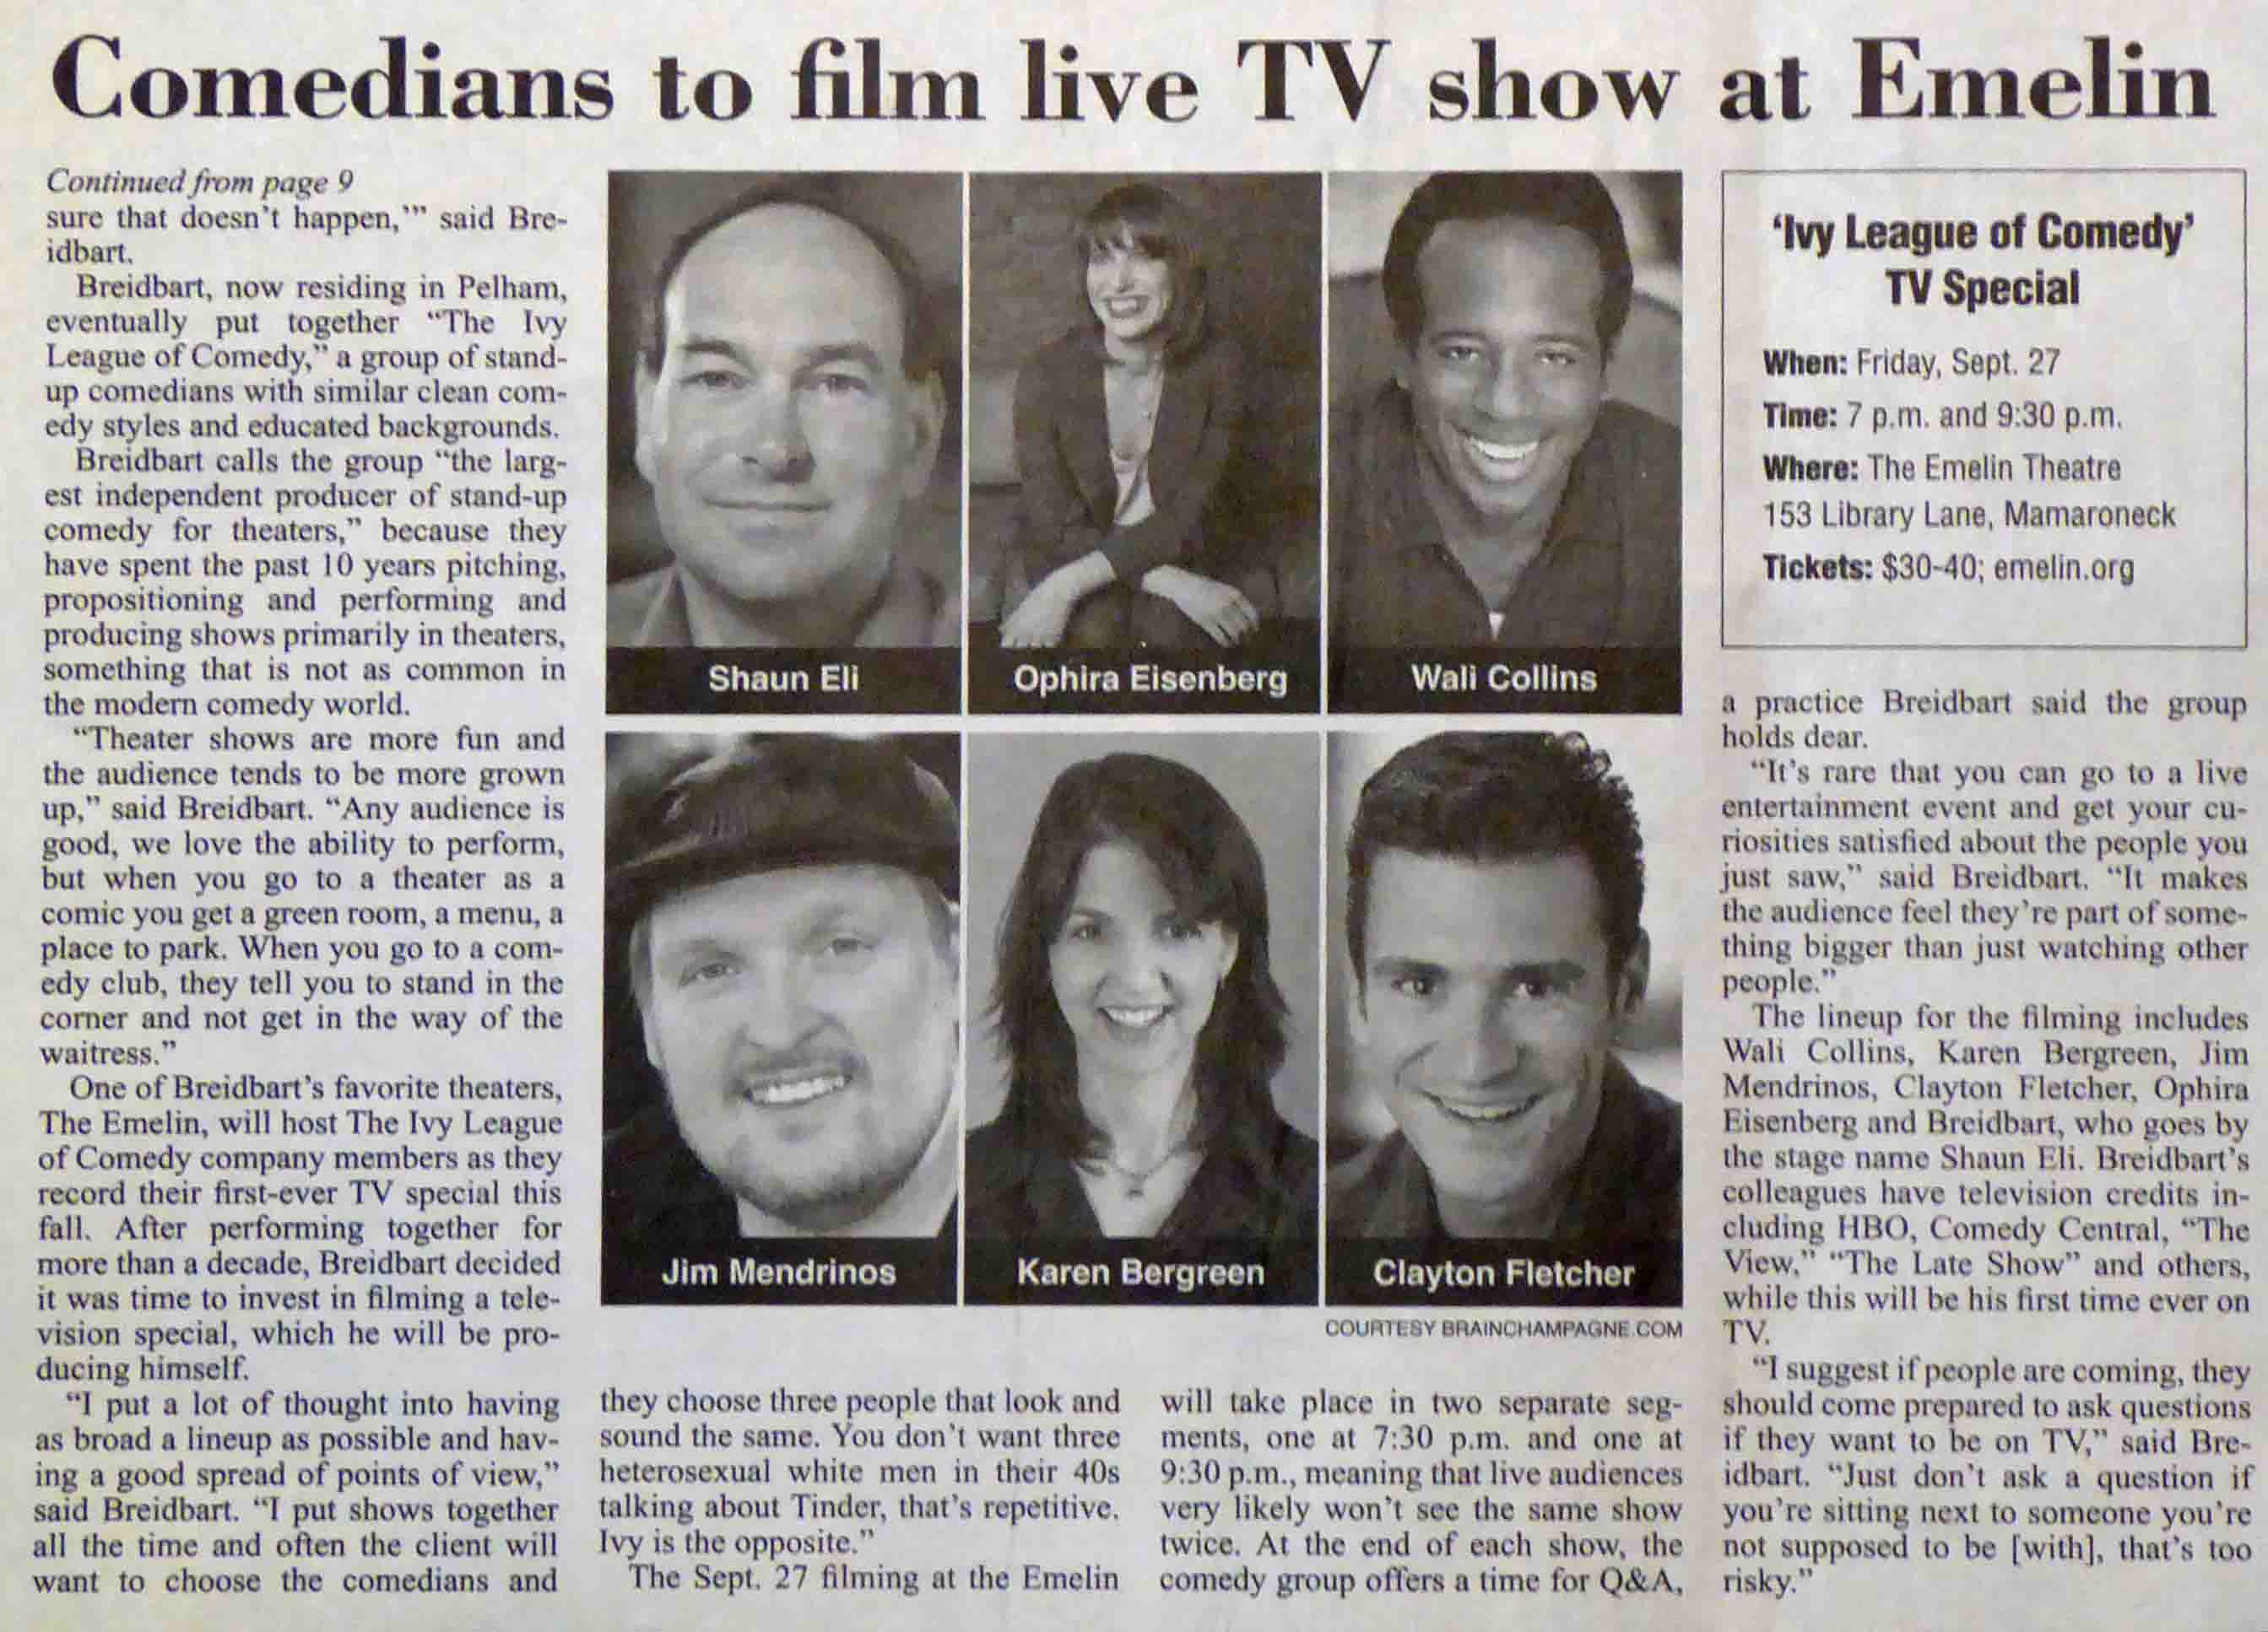 Page 2 of Scarsdale Inquirer article on Ivy League of Comedy's TV taping with photos of six comedians